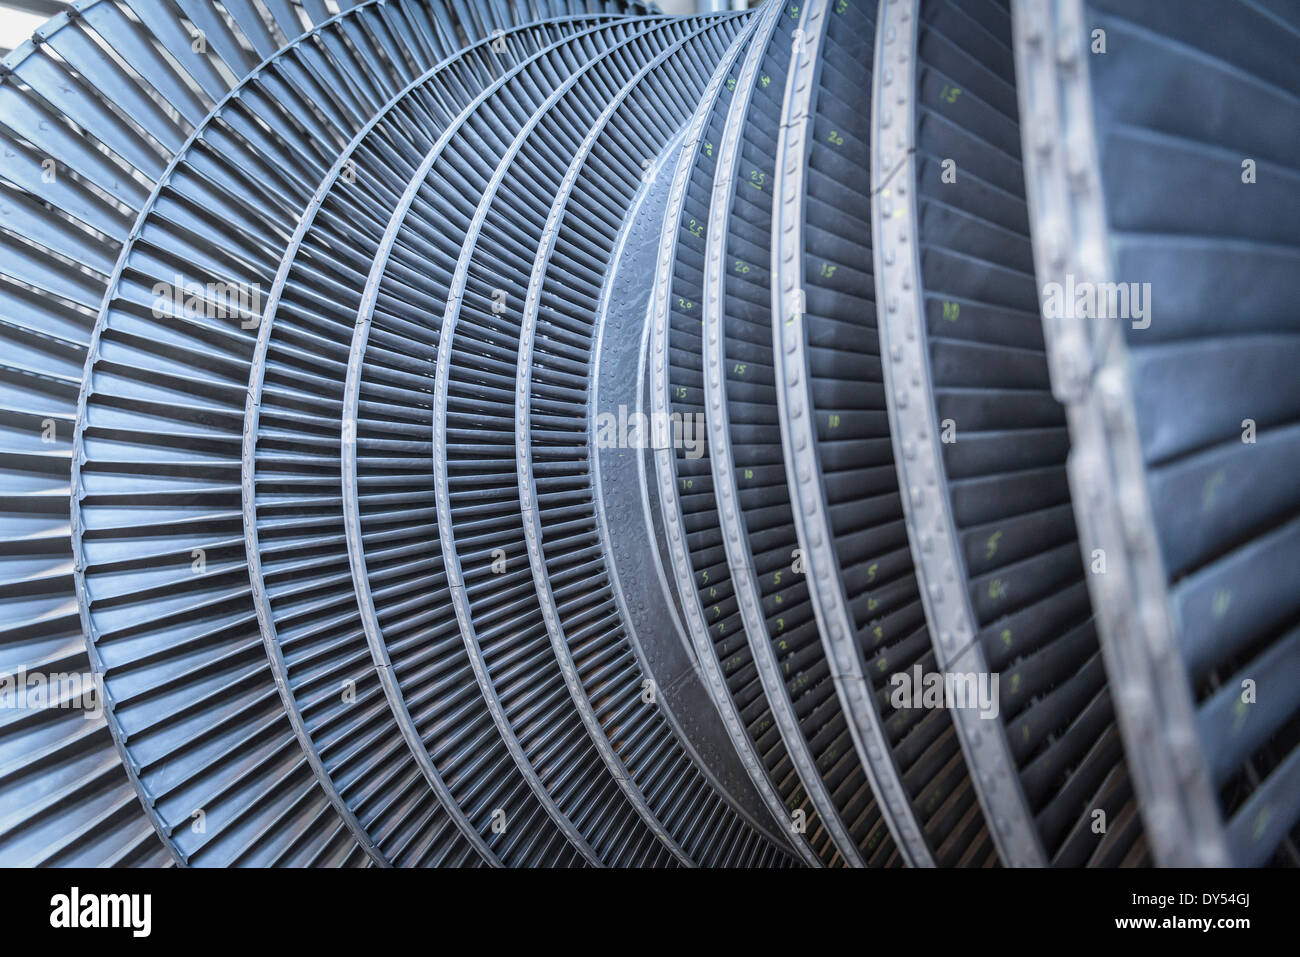 Detail of low pressure steam turbine - Stock Image